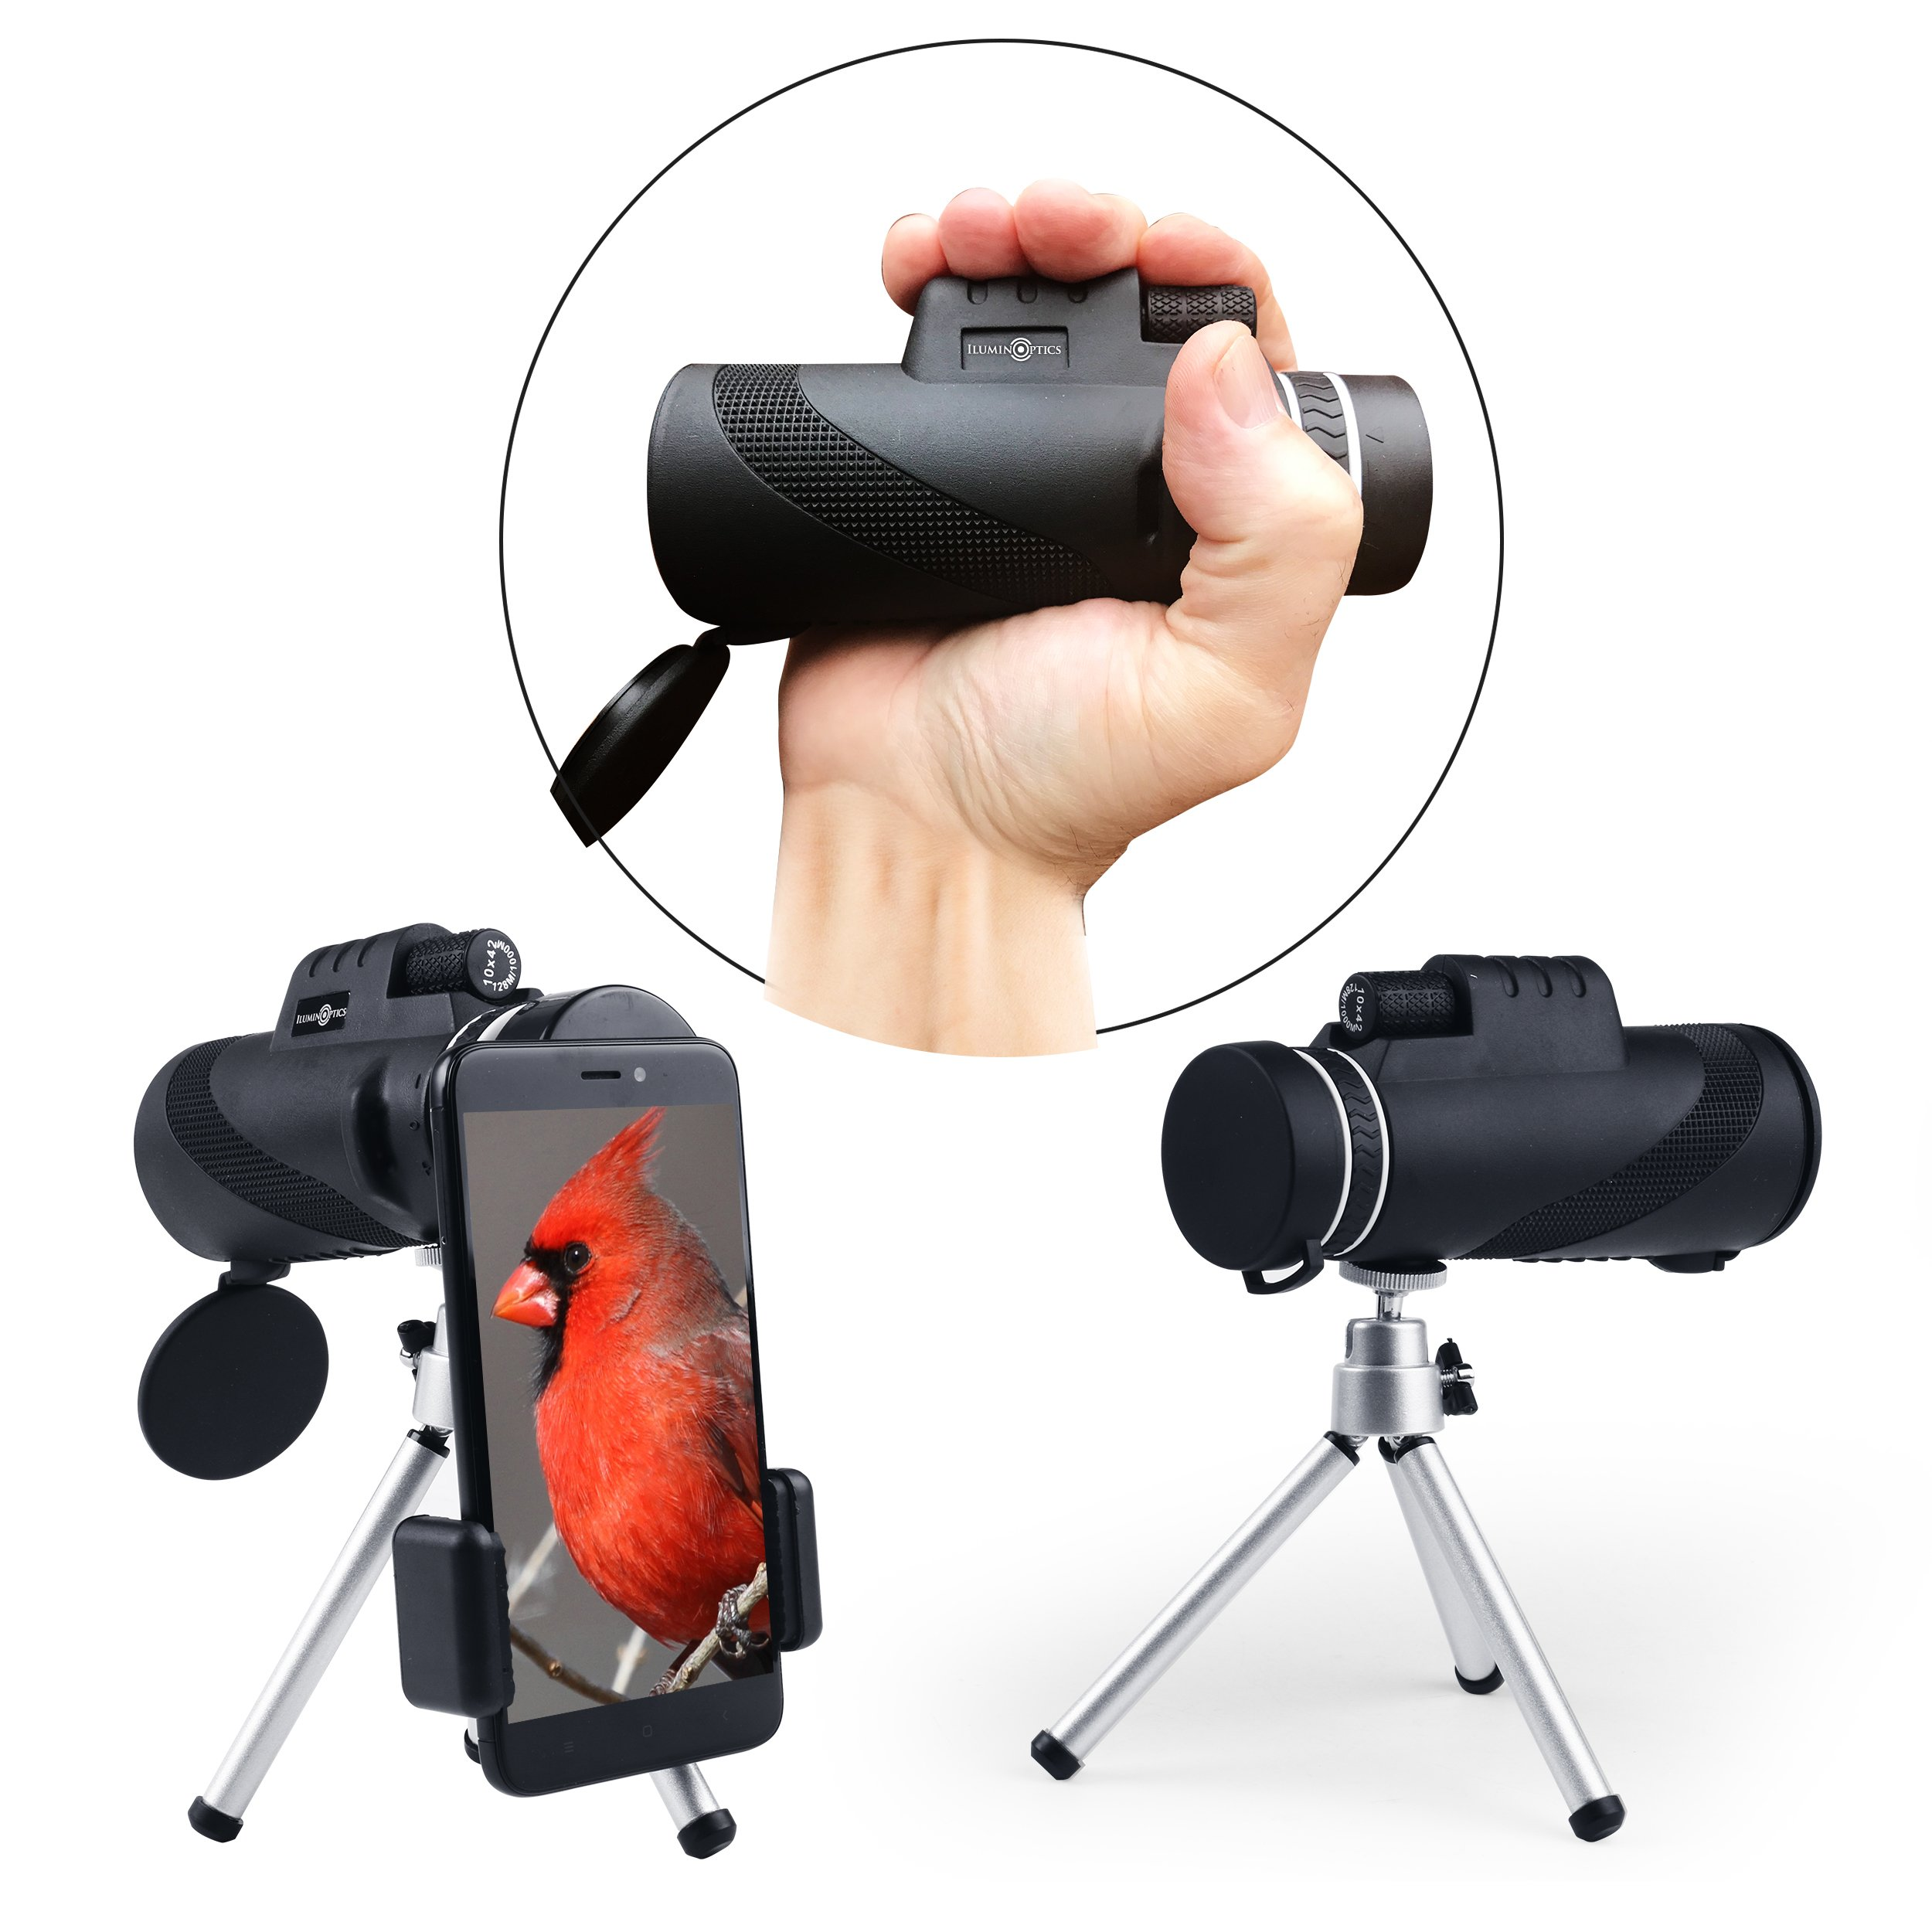 10X42 High Power Prism Monocular. HD-Wide View-Waterproof-Fog Proof-Monocular Telescope with BAK4 Lens+Fast Smartphone Adaptor-Tripod-Strap & Case for Hunting-Hiking-Bird Watching-Sports-Surveil by ILuminOptics